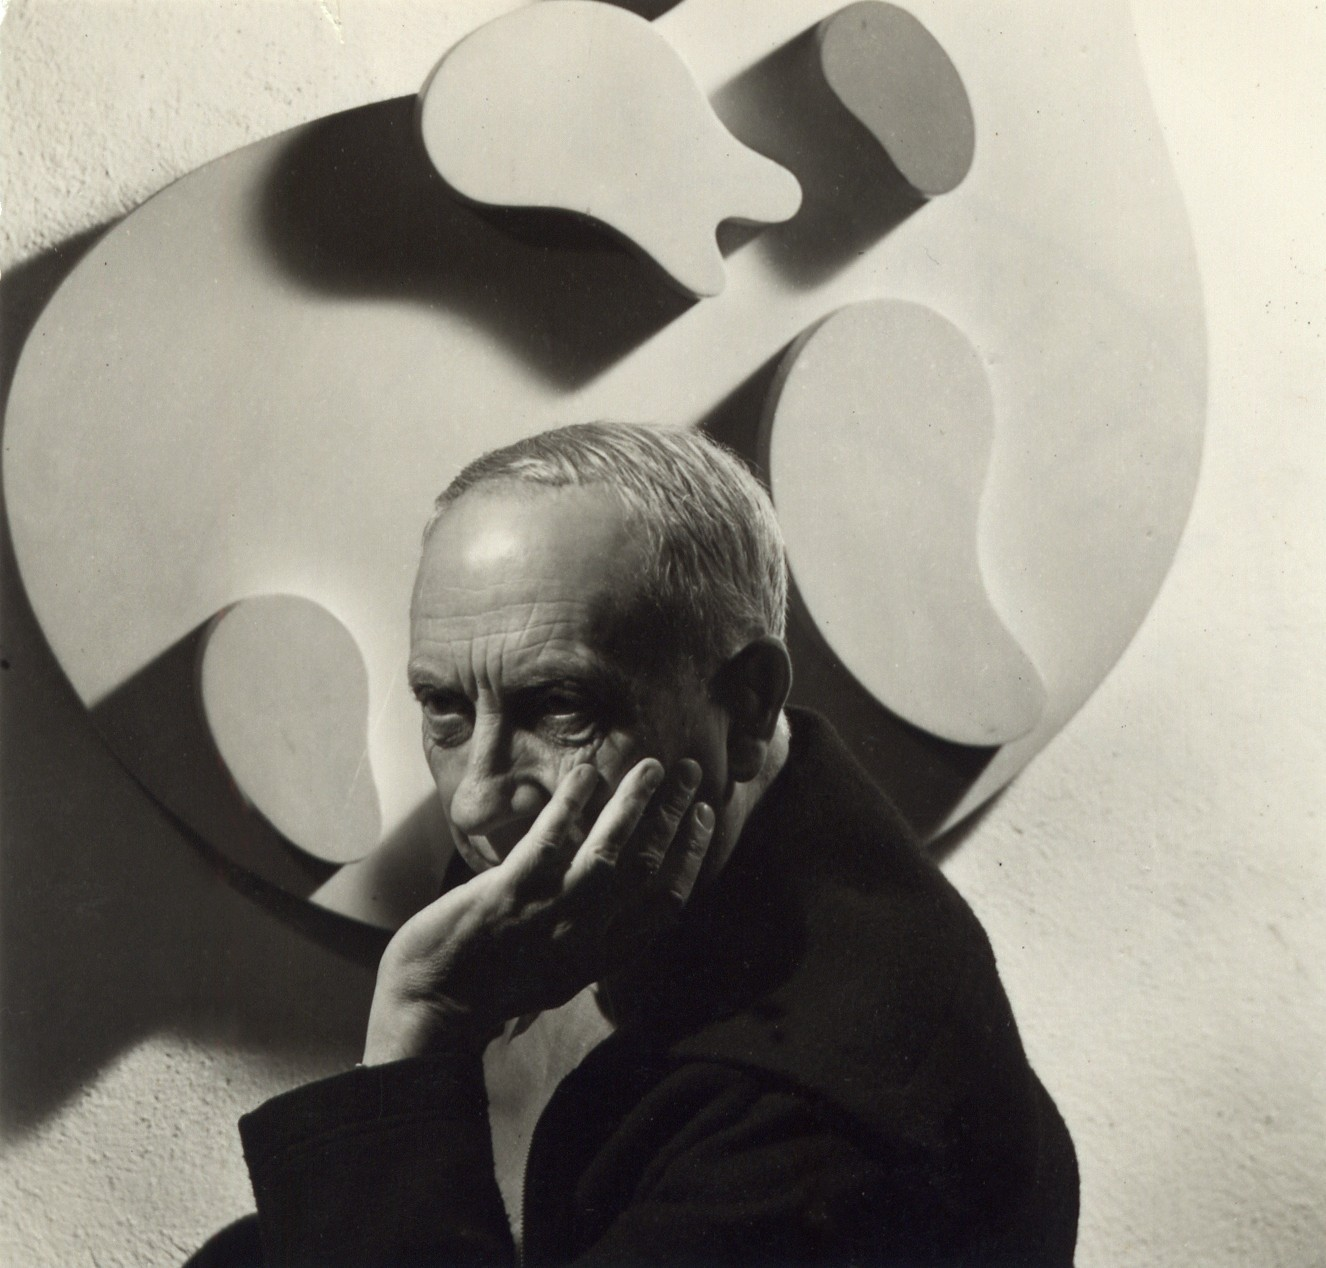 Hans Arp in front of one of his reliefs, Basel, 1946/1947 (Photograph: Atelier Eidenbenz)